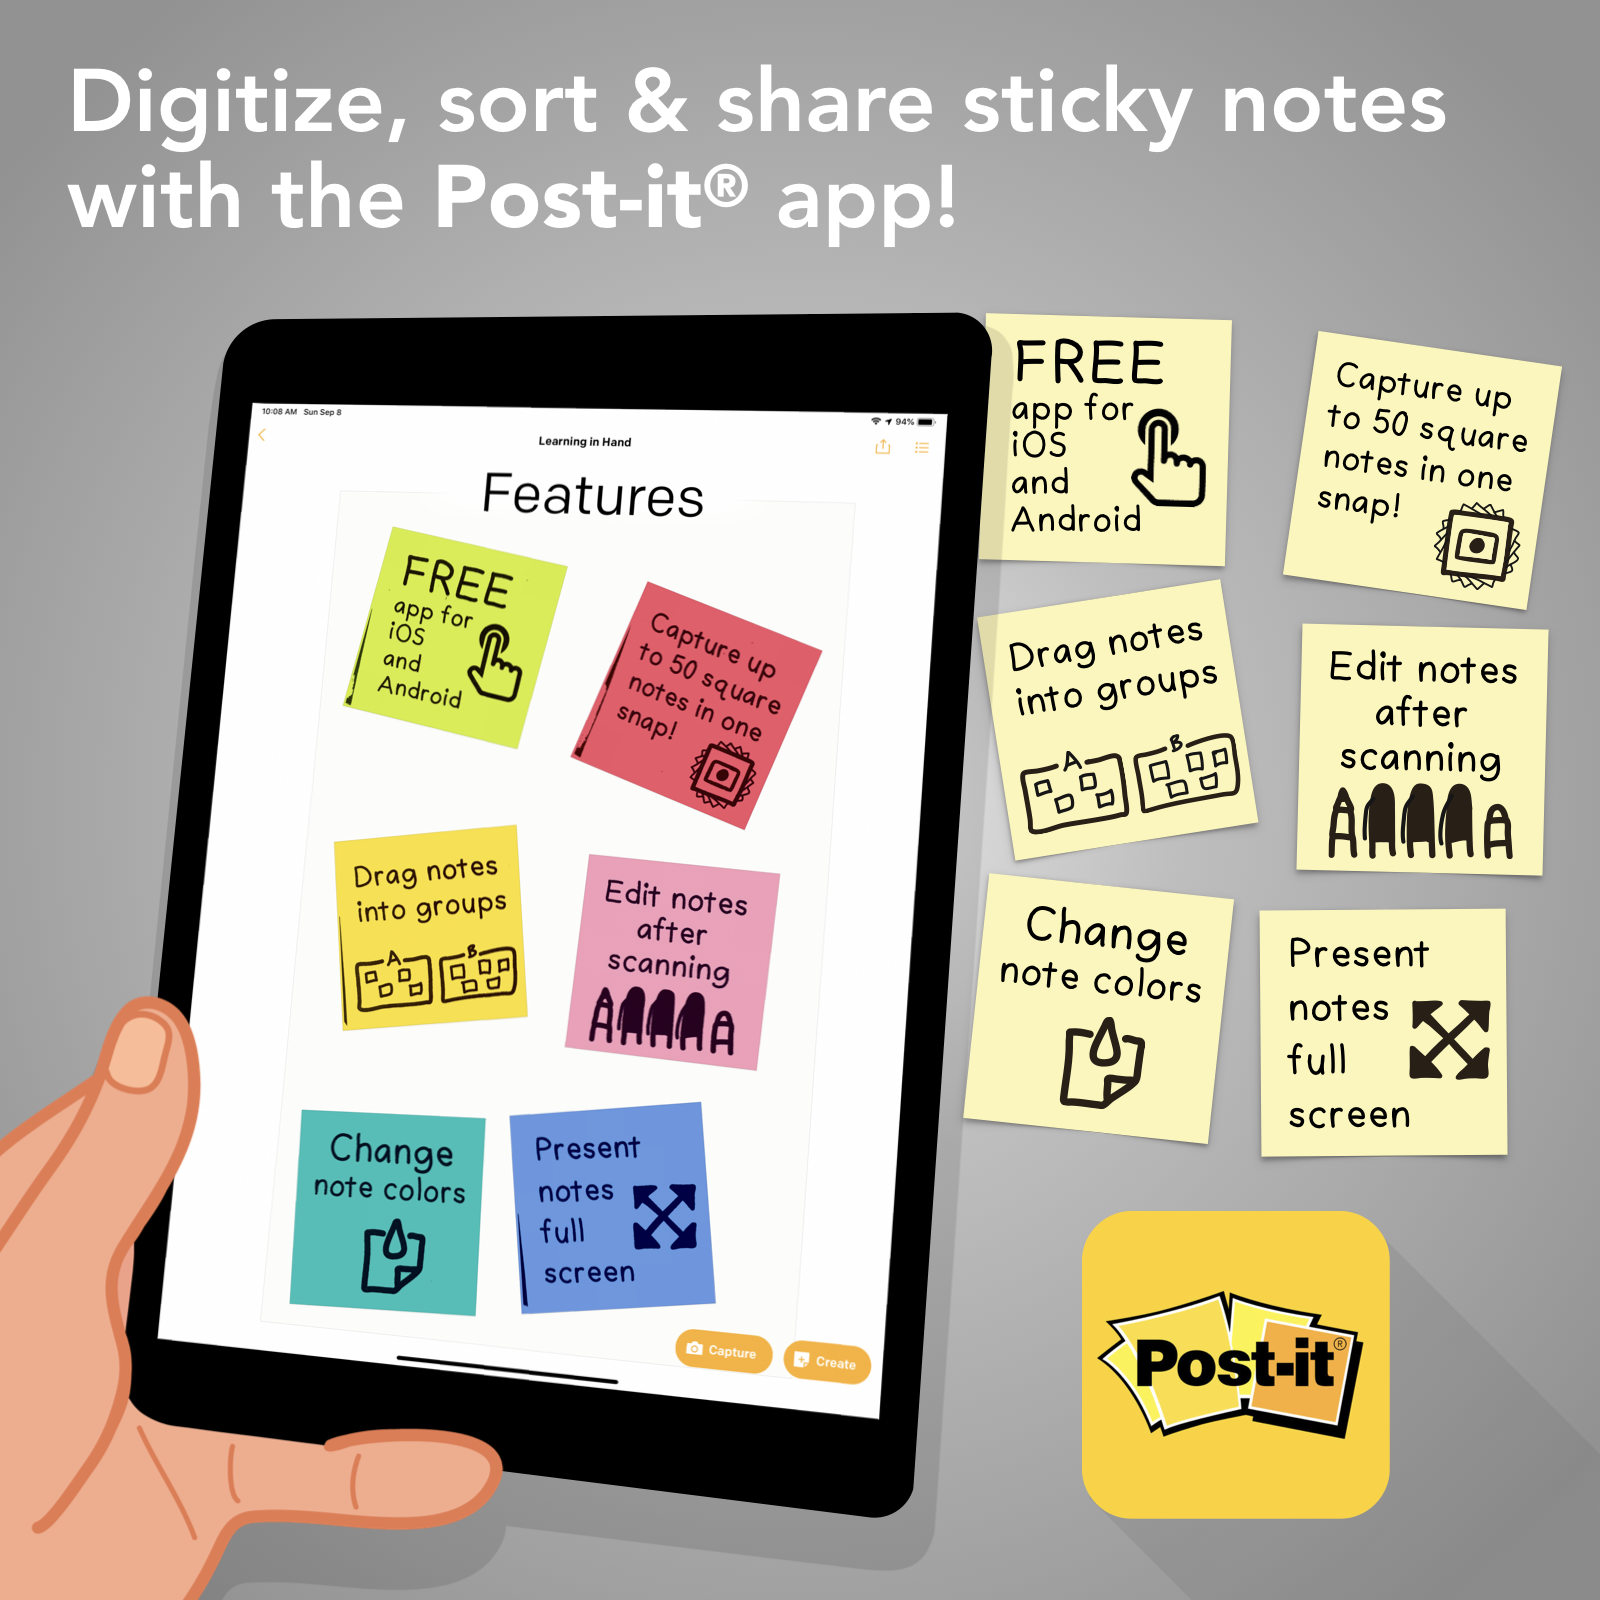 photograph regarding Editable Post It Note Template titled Print Custom made Sticky Notes with Google Slides Discovering within